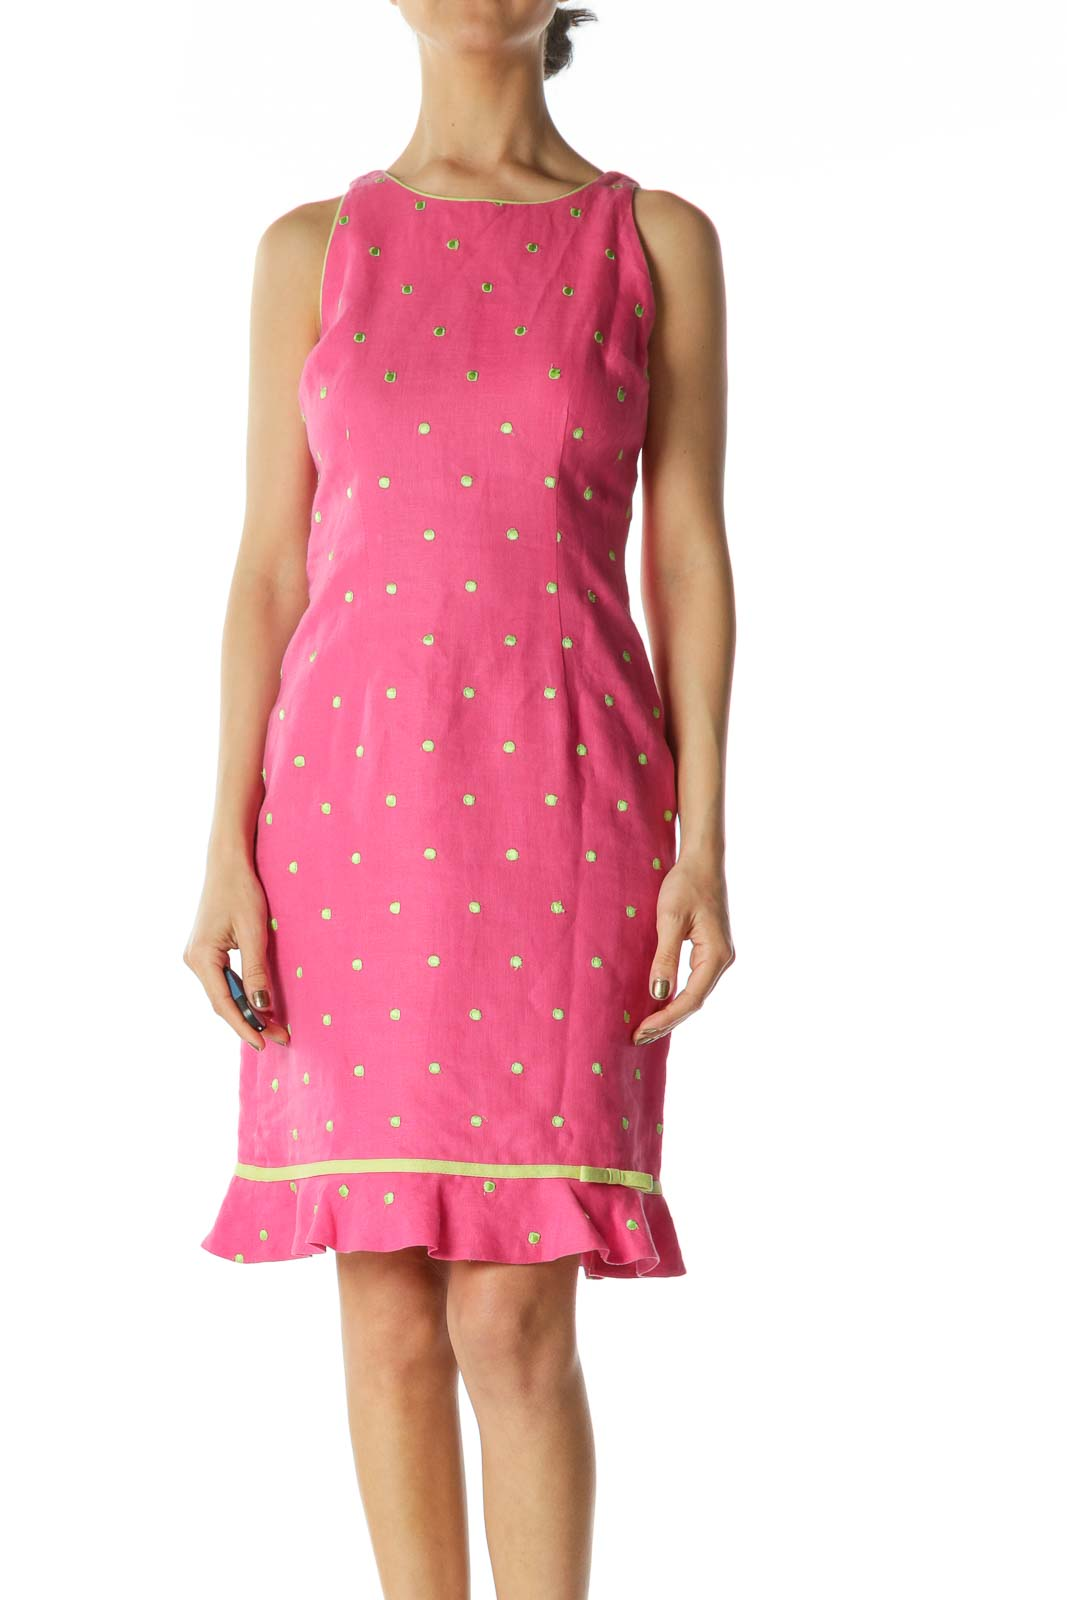 Pink/Green 100% Linen Embroidered-Polka Dots Dress Front